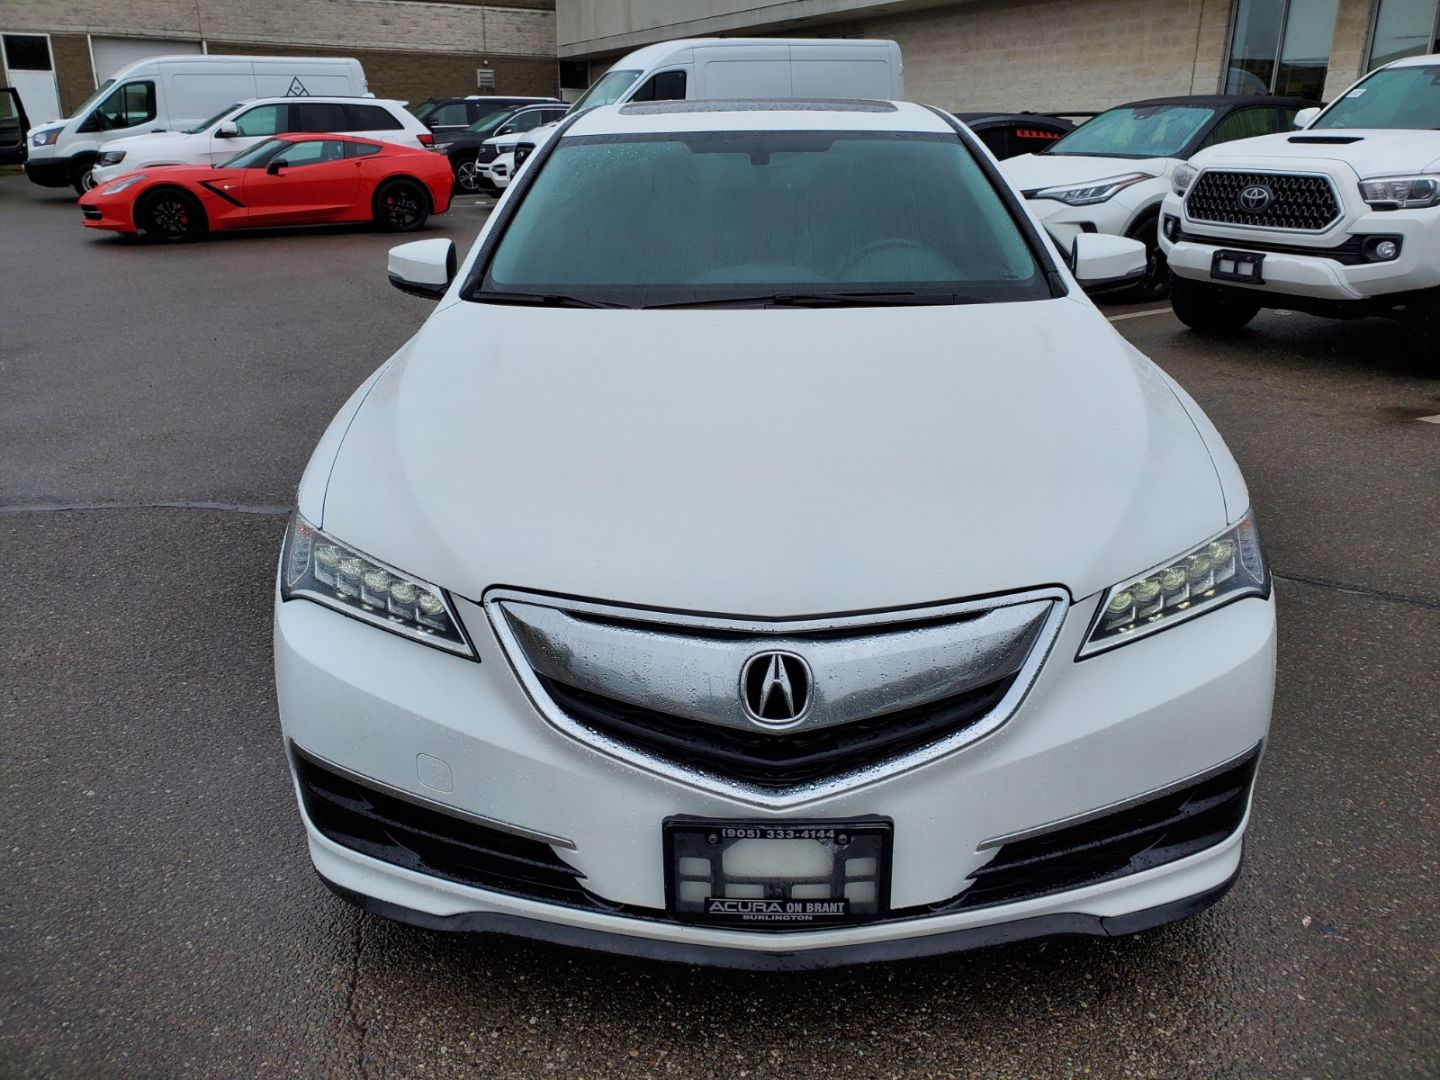 2015 Acura TLX  for sale in Mississauga, Ontario